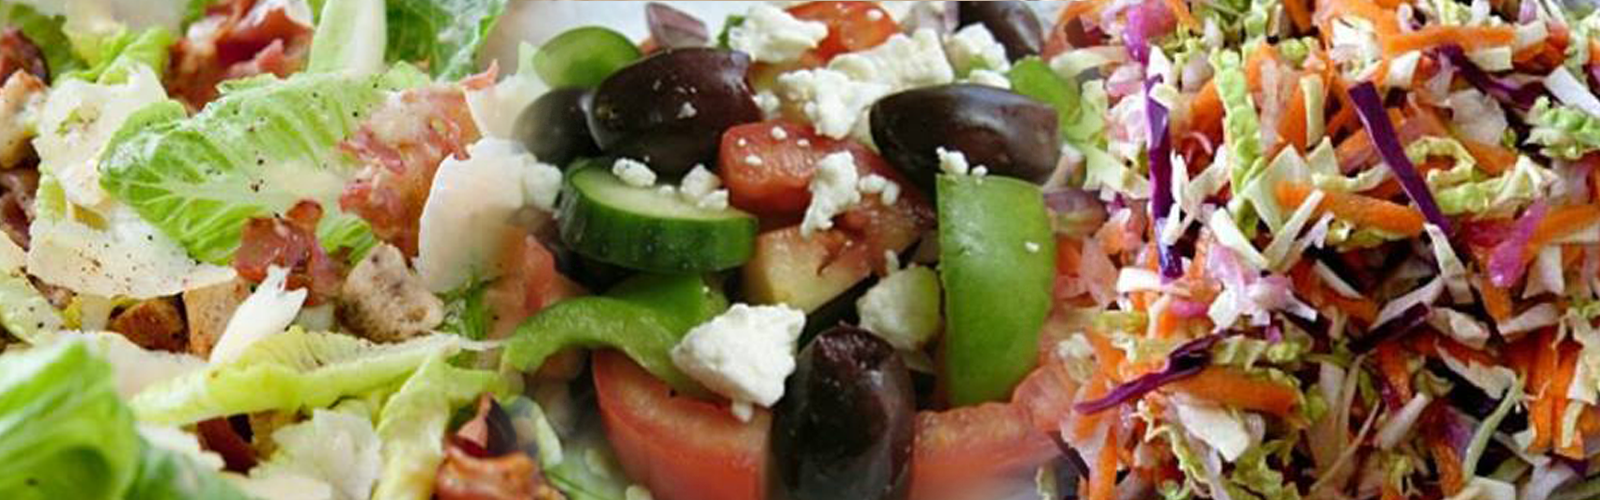 carvn-salad-header-pic2